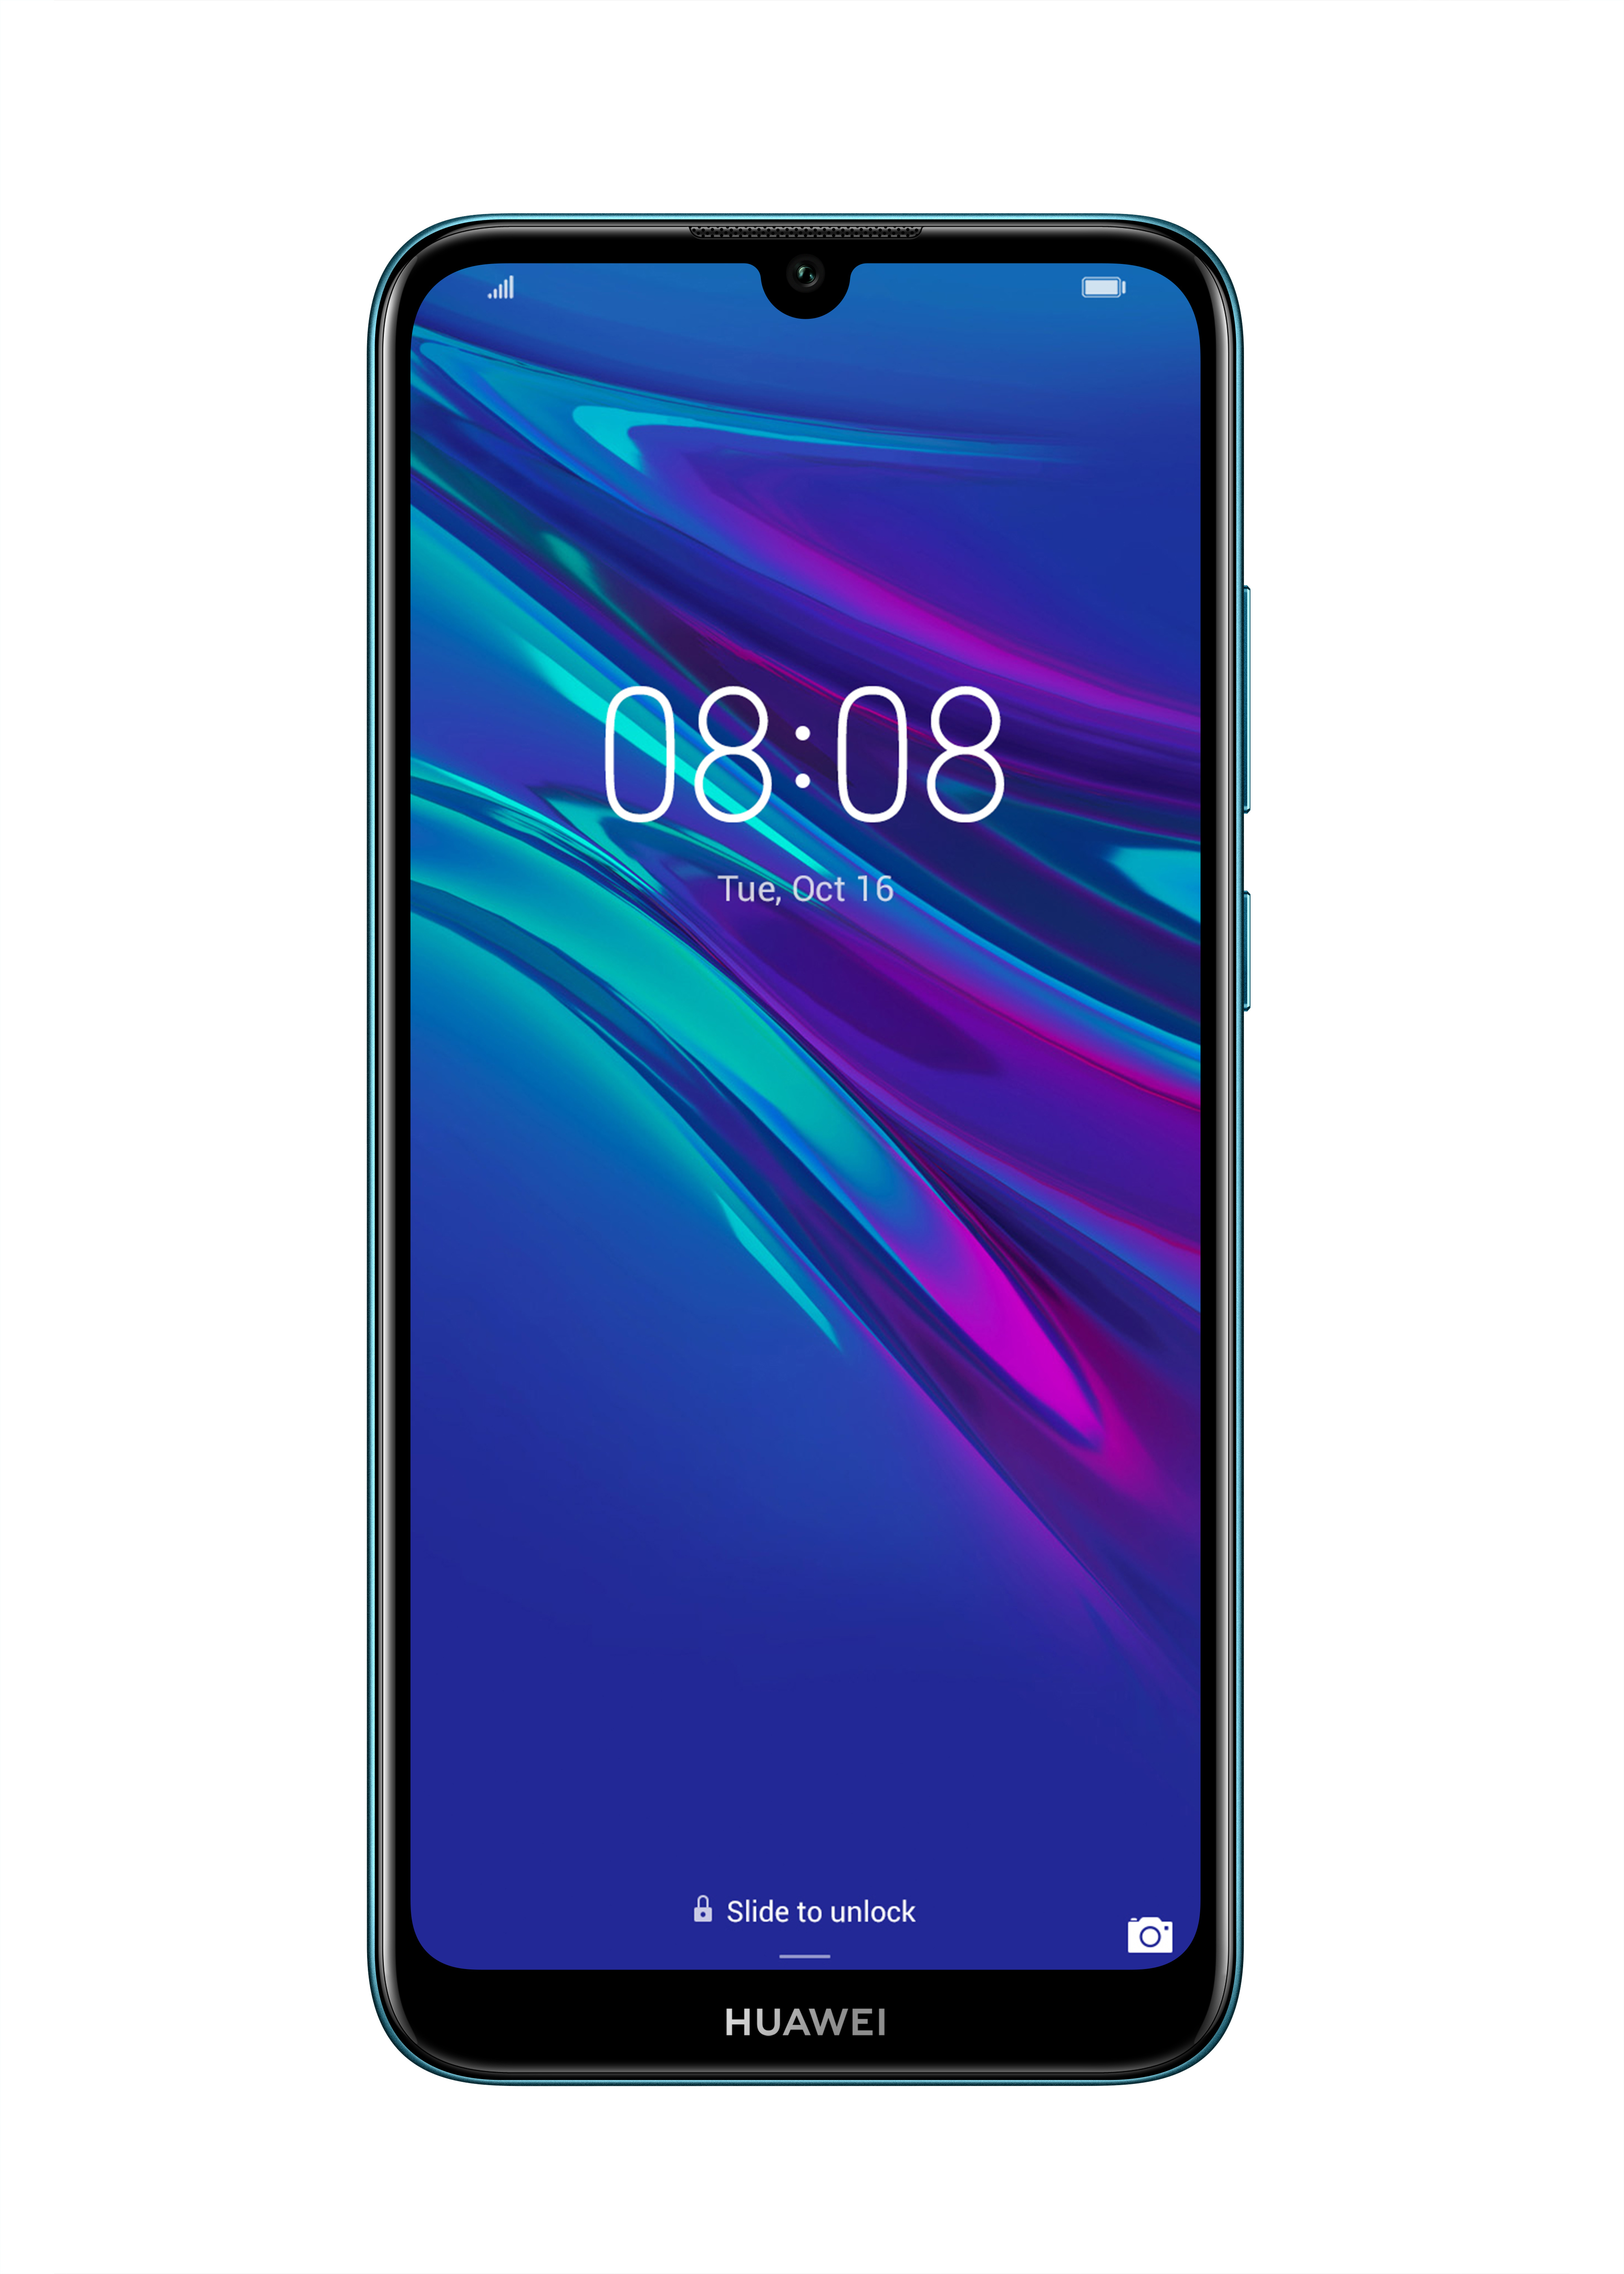 Huawei Y6 Smartphone 15,46cm HD+Display Android 9.0 32GB 13MP DUAL-SIM für 125,00 Euro